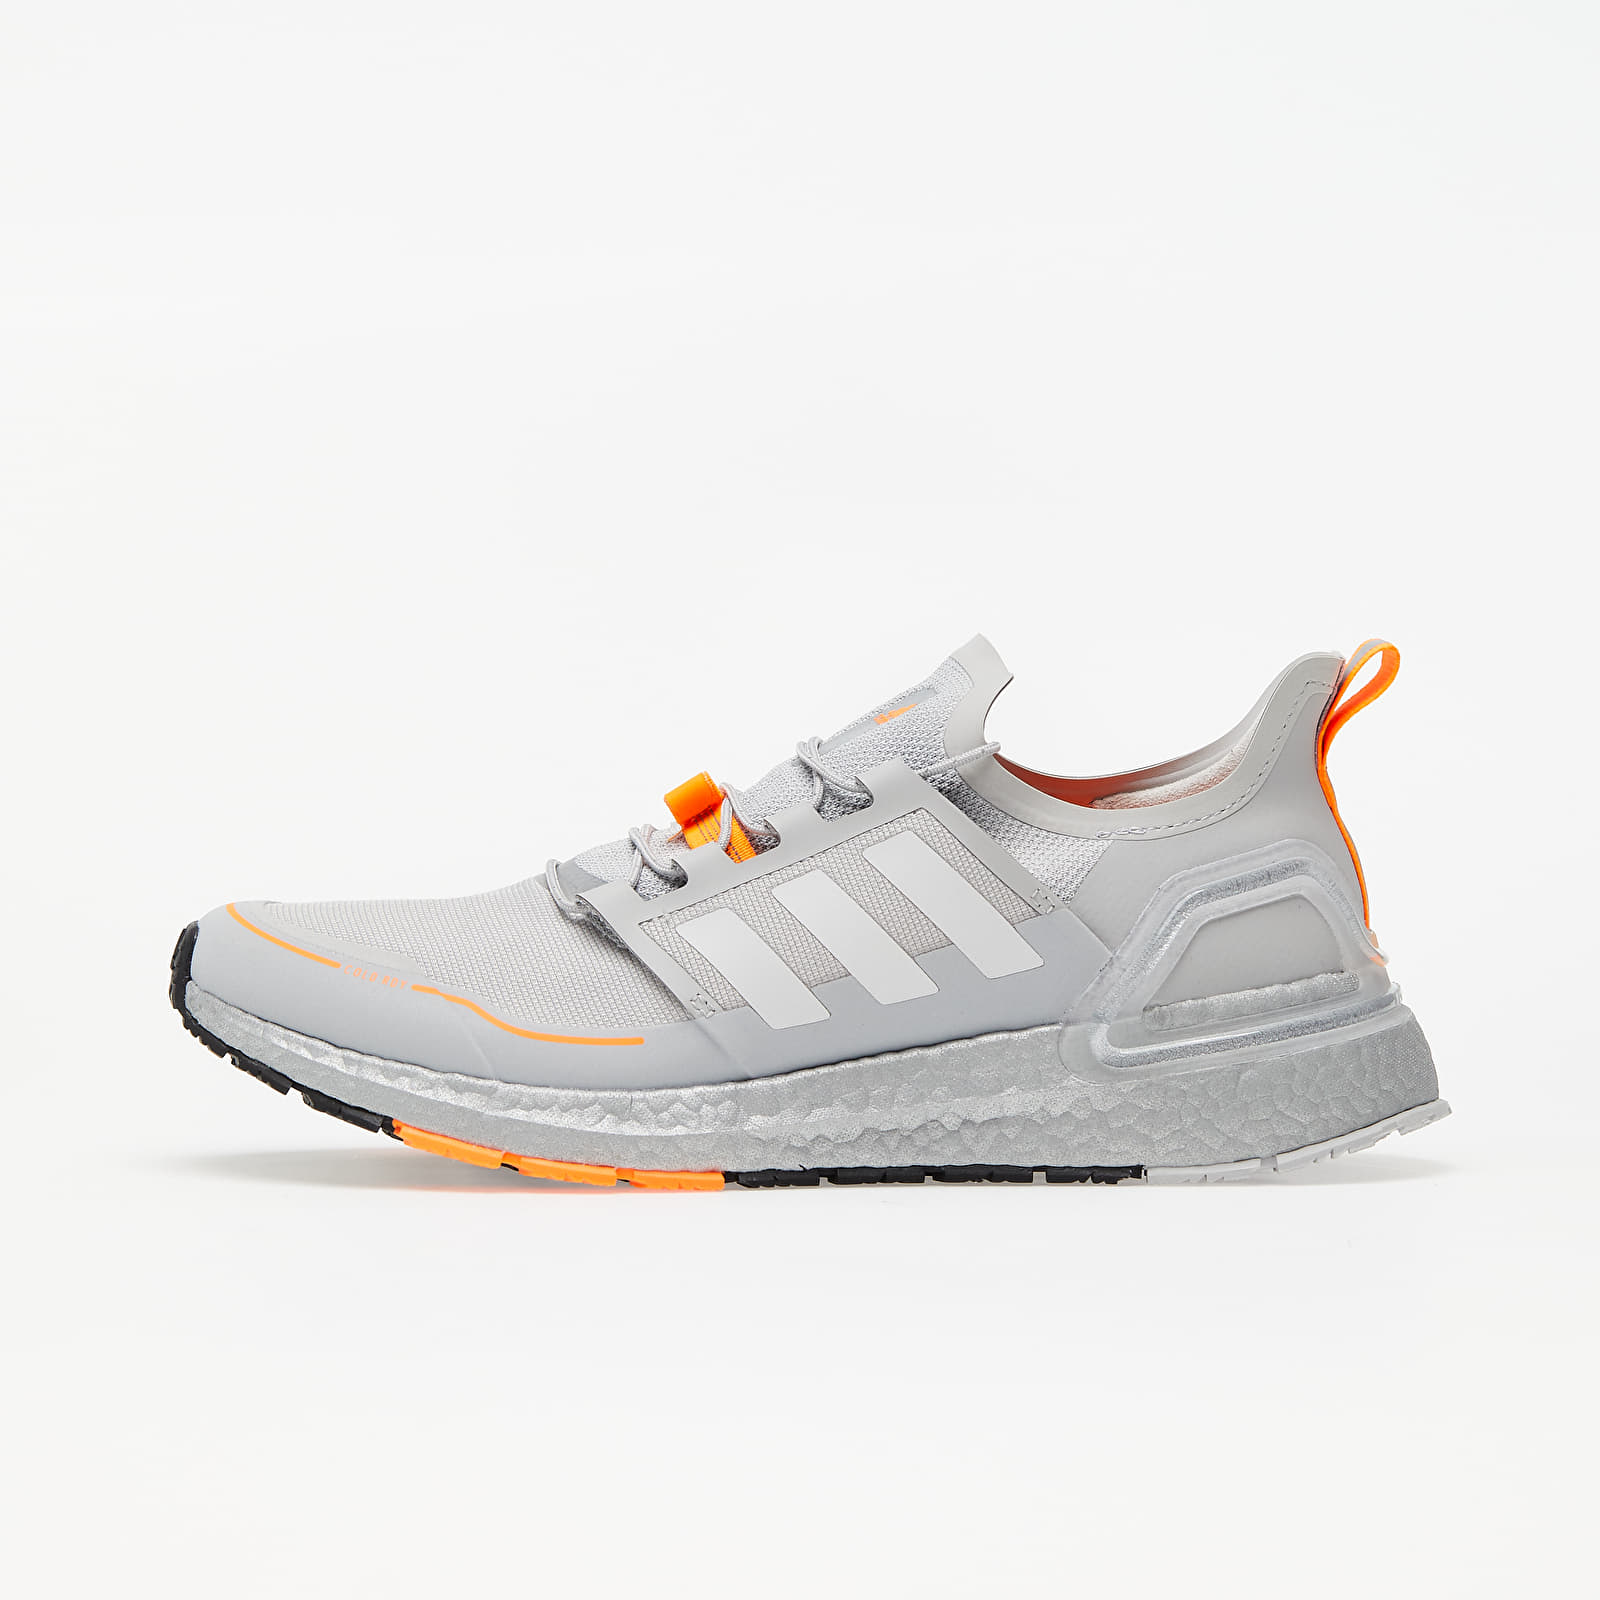 adidas UltraBOOST COLD.RDY Grey Two/ Ftw White/ Signature Orange EG9800